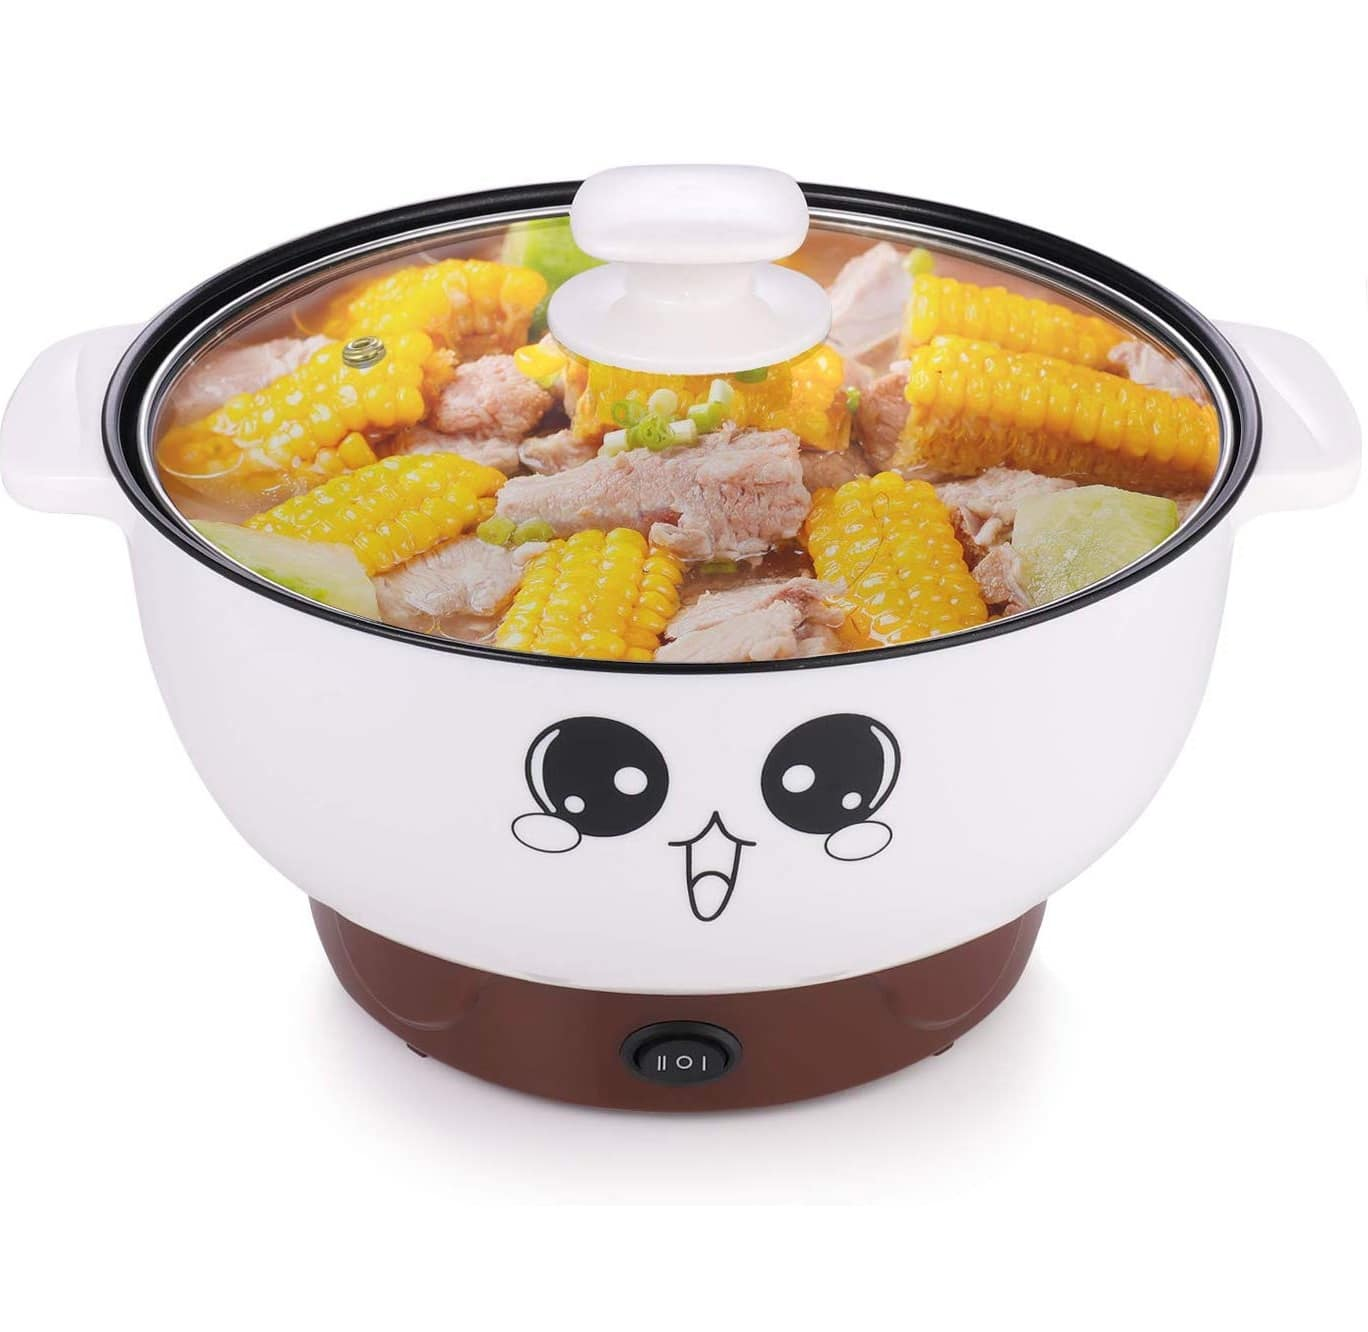 9.MINGPINHUIUS 4-in-1 Multifunction Electric Cooker Skillet Wok Electric Hot Pot For Cook Rice Fried Noodles Stew Soup Steamed Fish Boiled Egg